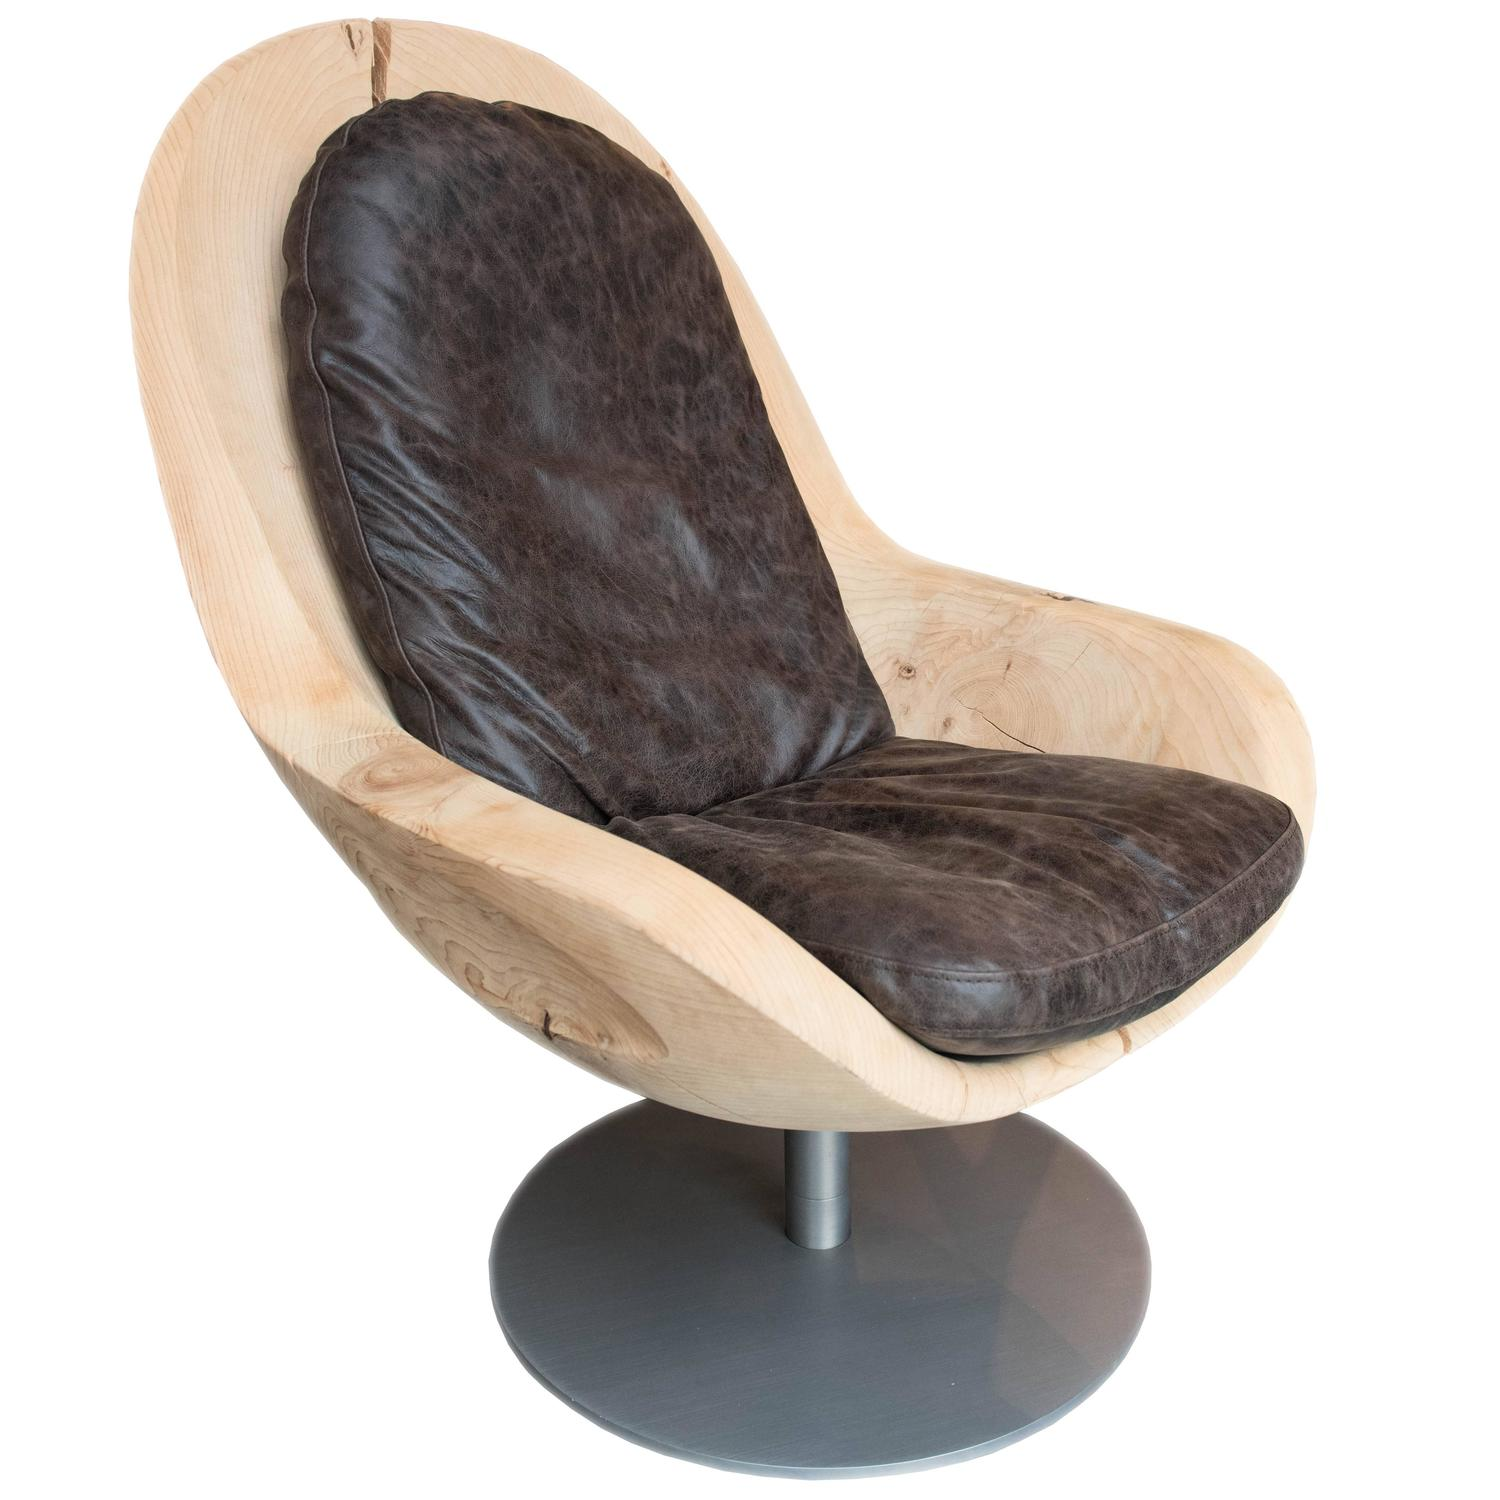 Riva 1920 Creus Armchair For Sale at 1stdibs